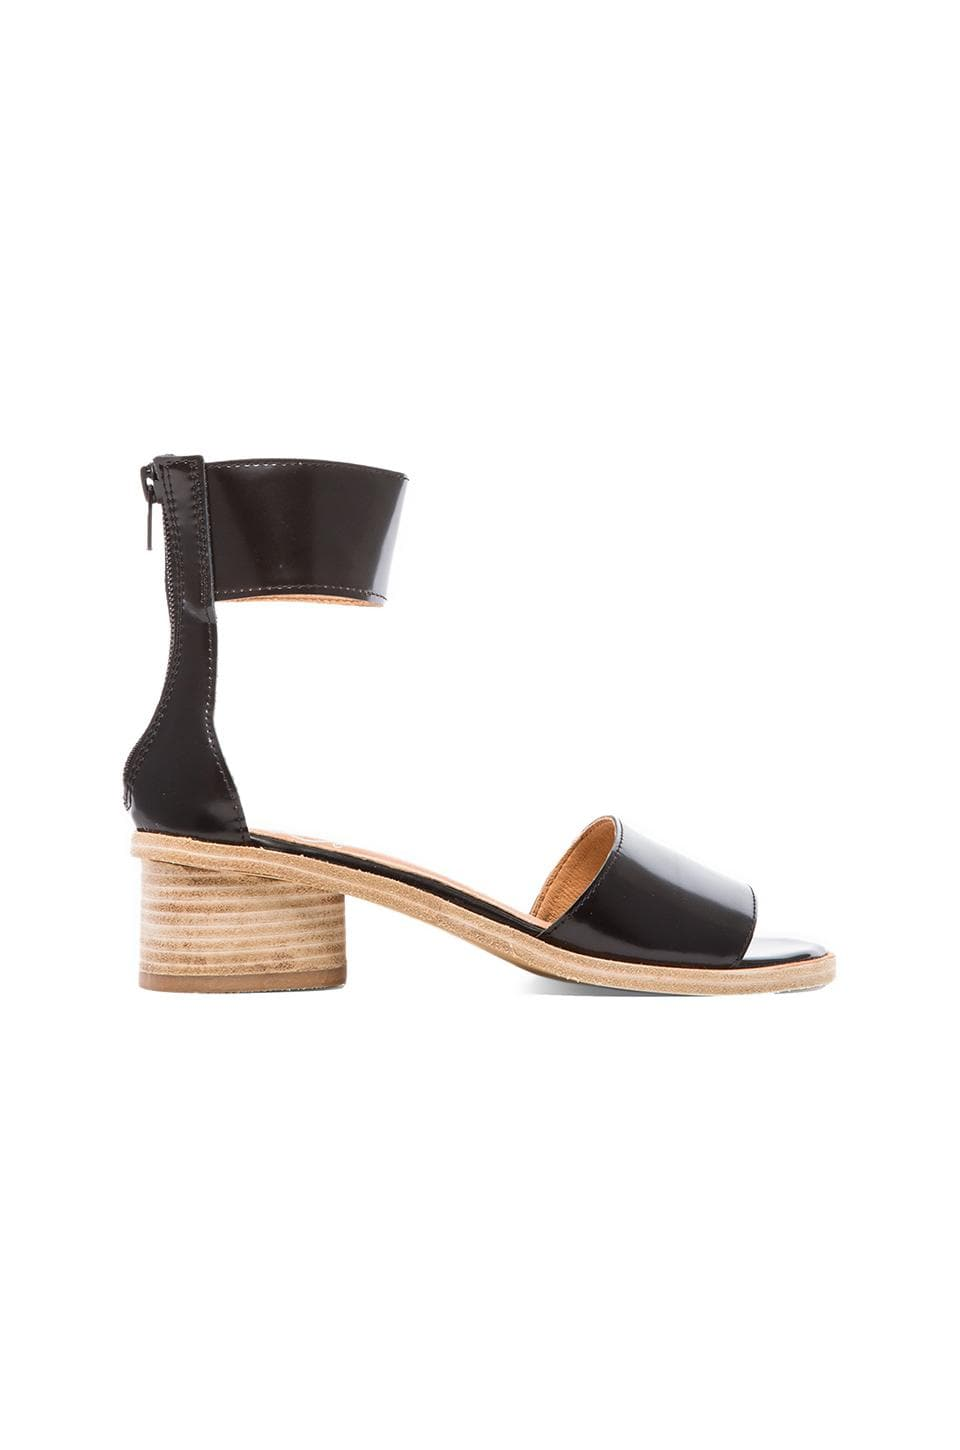 Jeffrey Campbell Borgia Sandal in Black Box